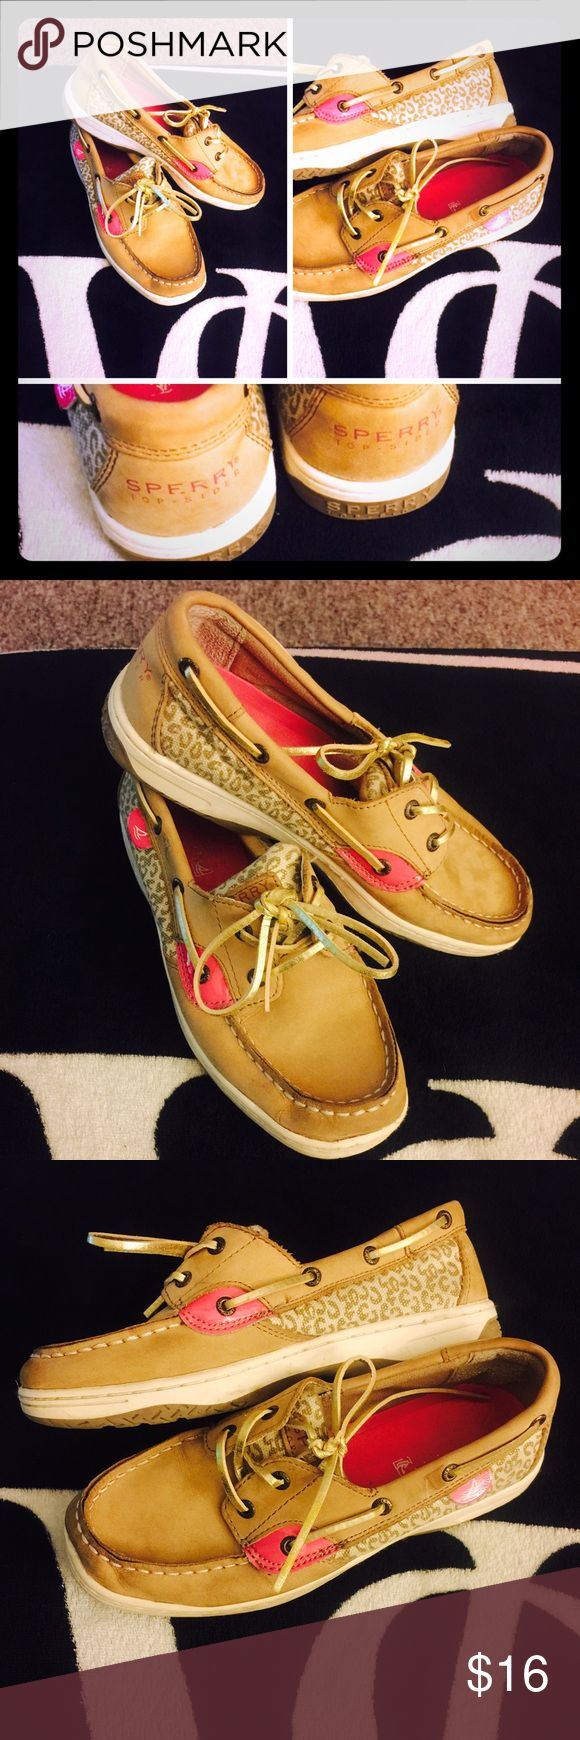 Hot Pink Leopard Print Sperrys Super cute Sperrys with leopard print on the sides with hot pink and gold detailing! Some slight discoloration but I'm sure can be clean. You see it on the toes in 2nd pic! Still in good condition! Sperry Top-Sider Shoes